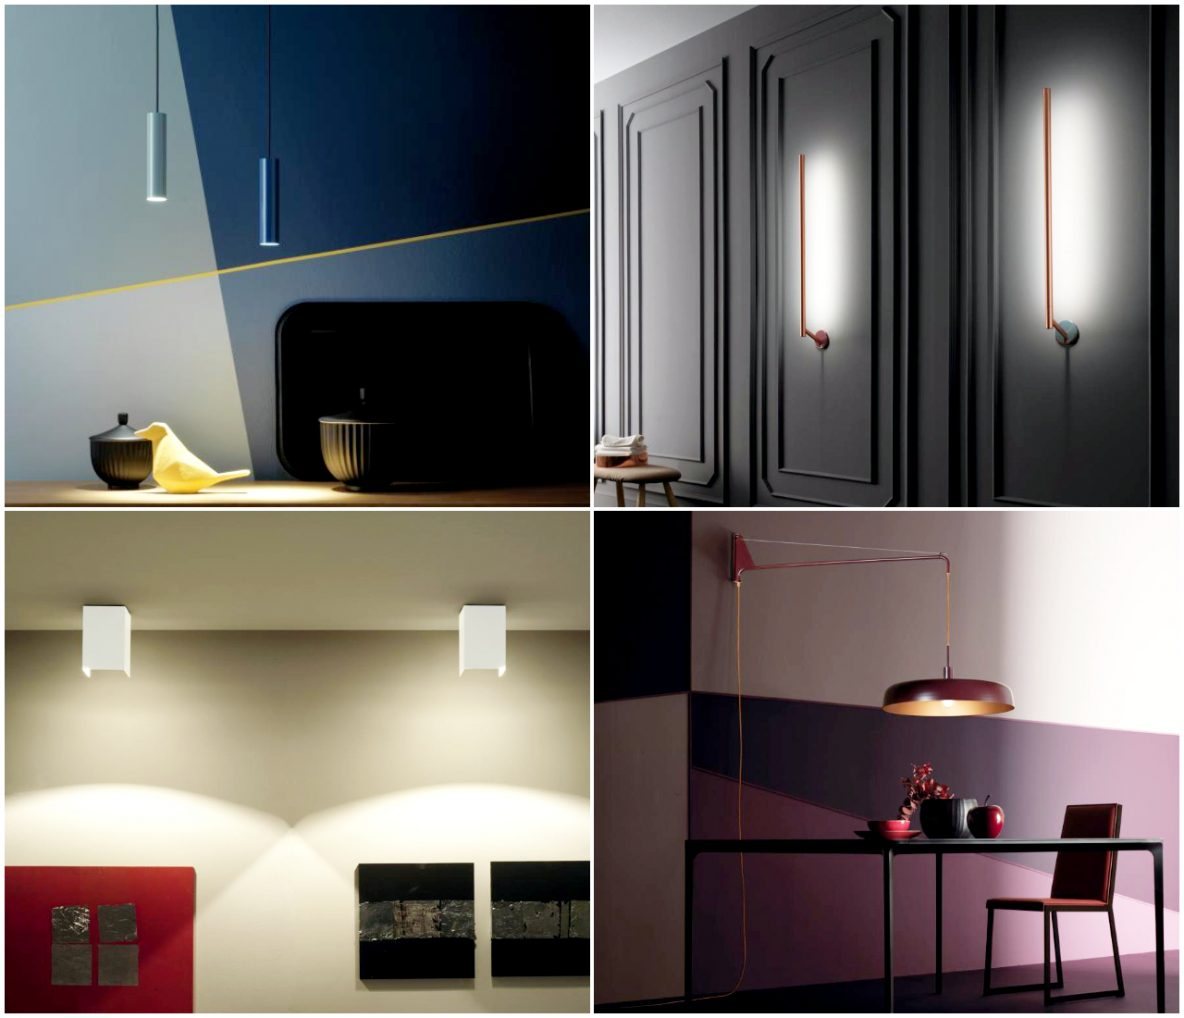 Oty Light - Lighting Design srl